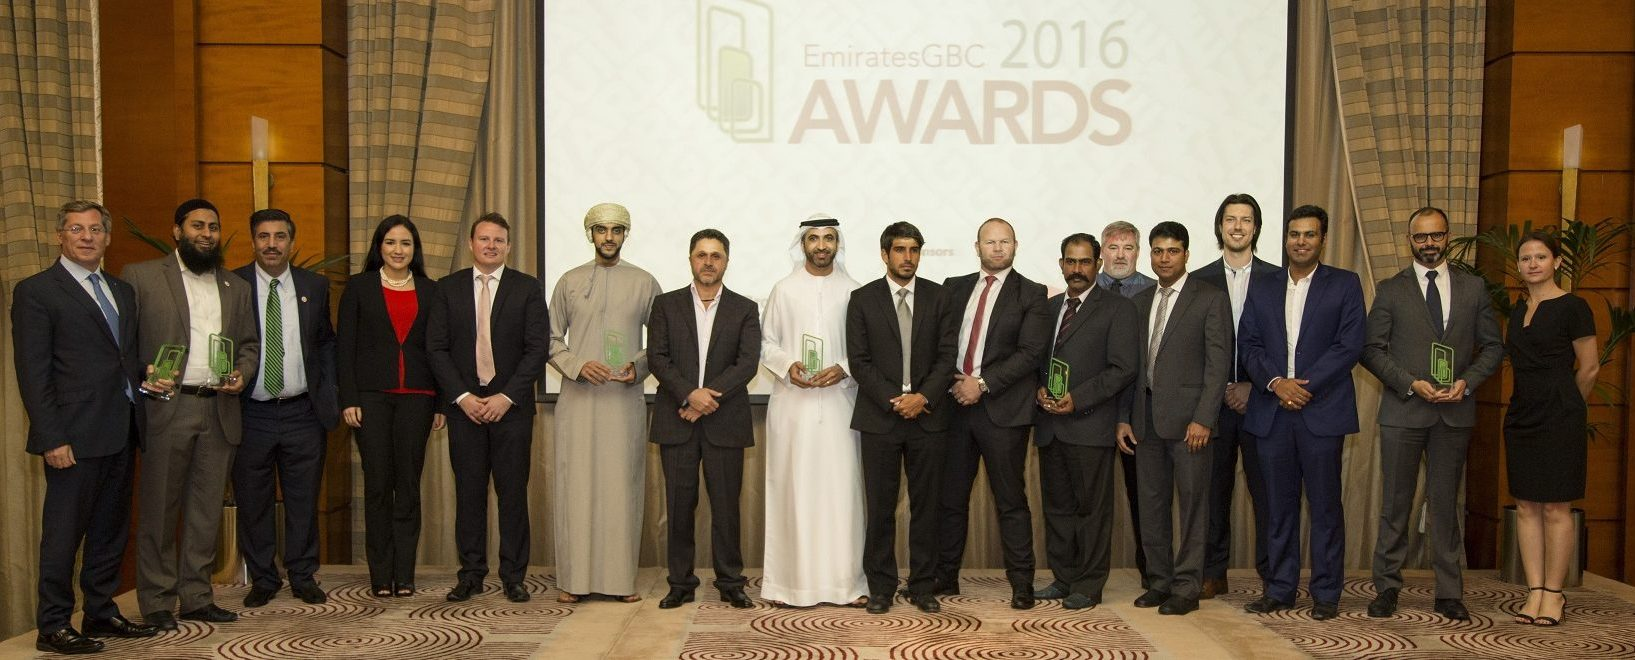 Winners of the fourth Annual EmiratesGBC Awards